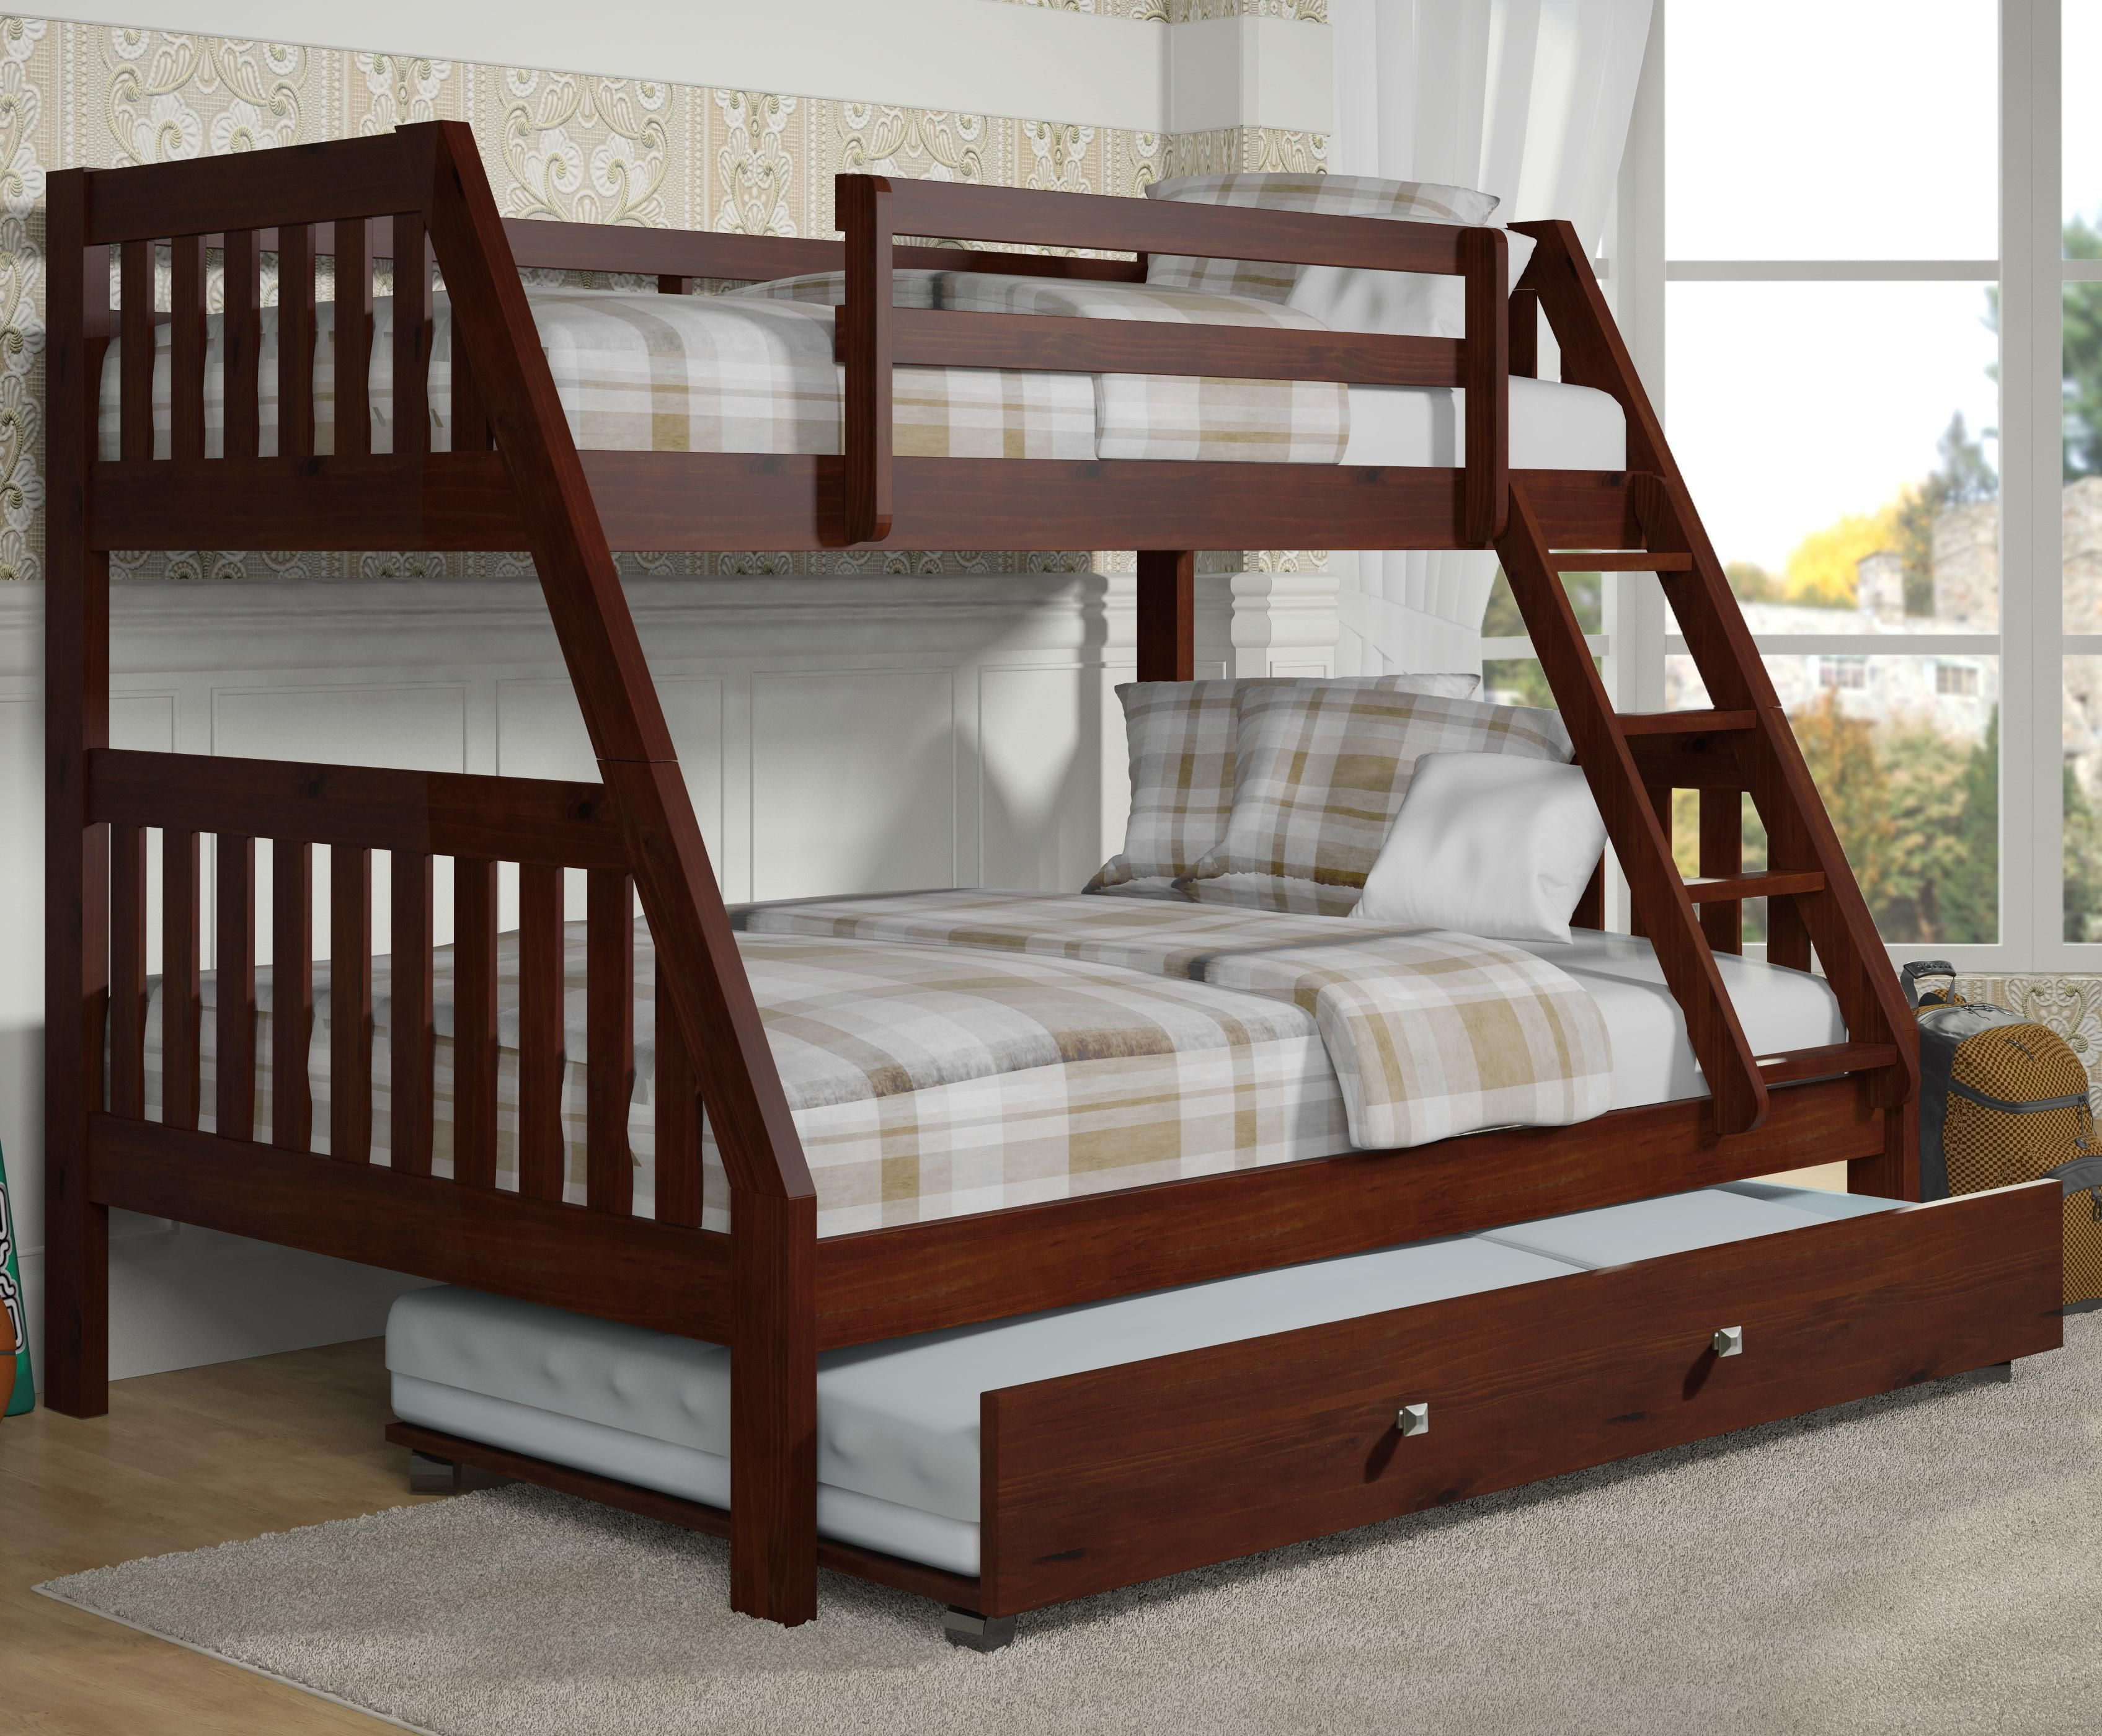 Twin Over Full Bunk Bed With Trundle Bunk Bed With Trundle Full